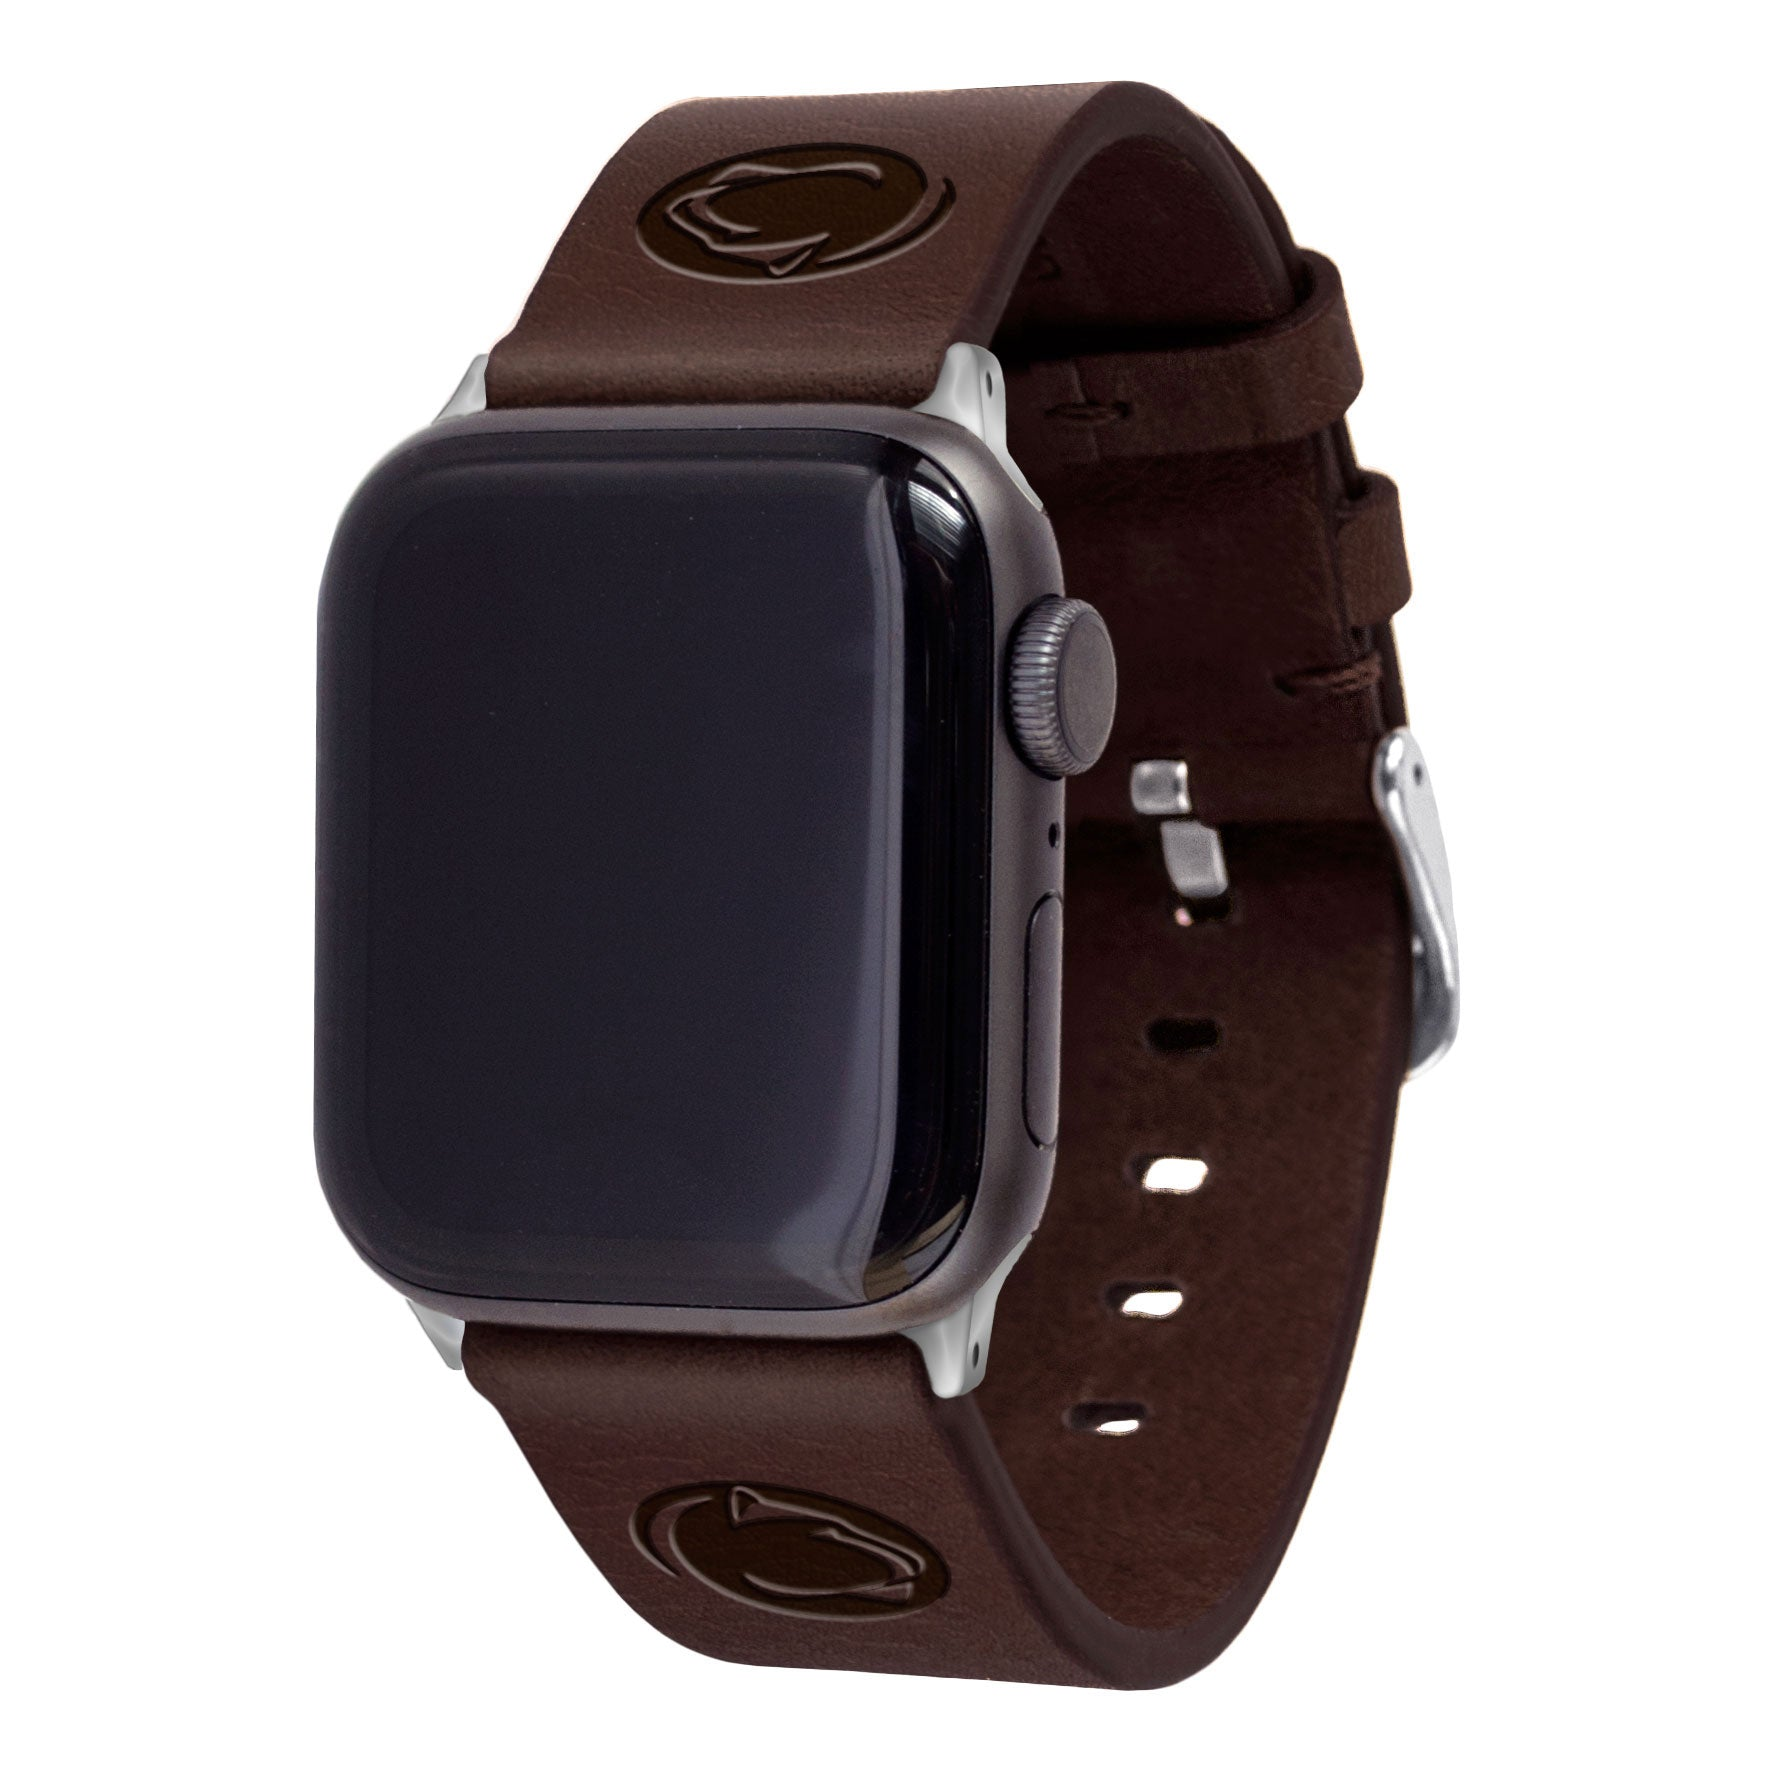 Penn State Nittany Lions Leather Apple Watch Band - Affinity Bands